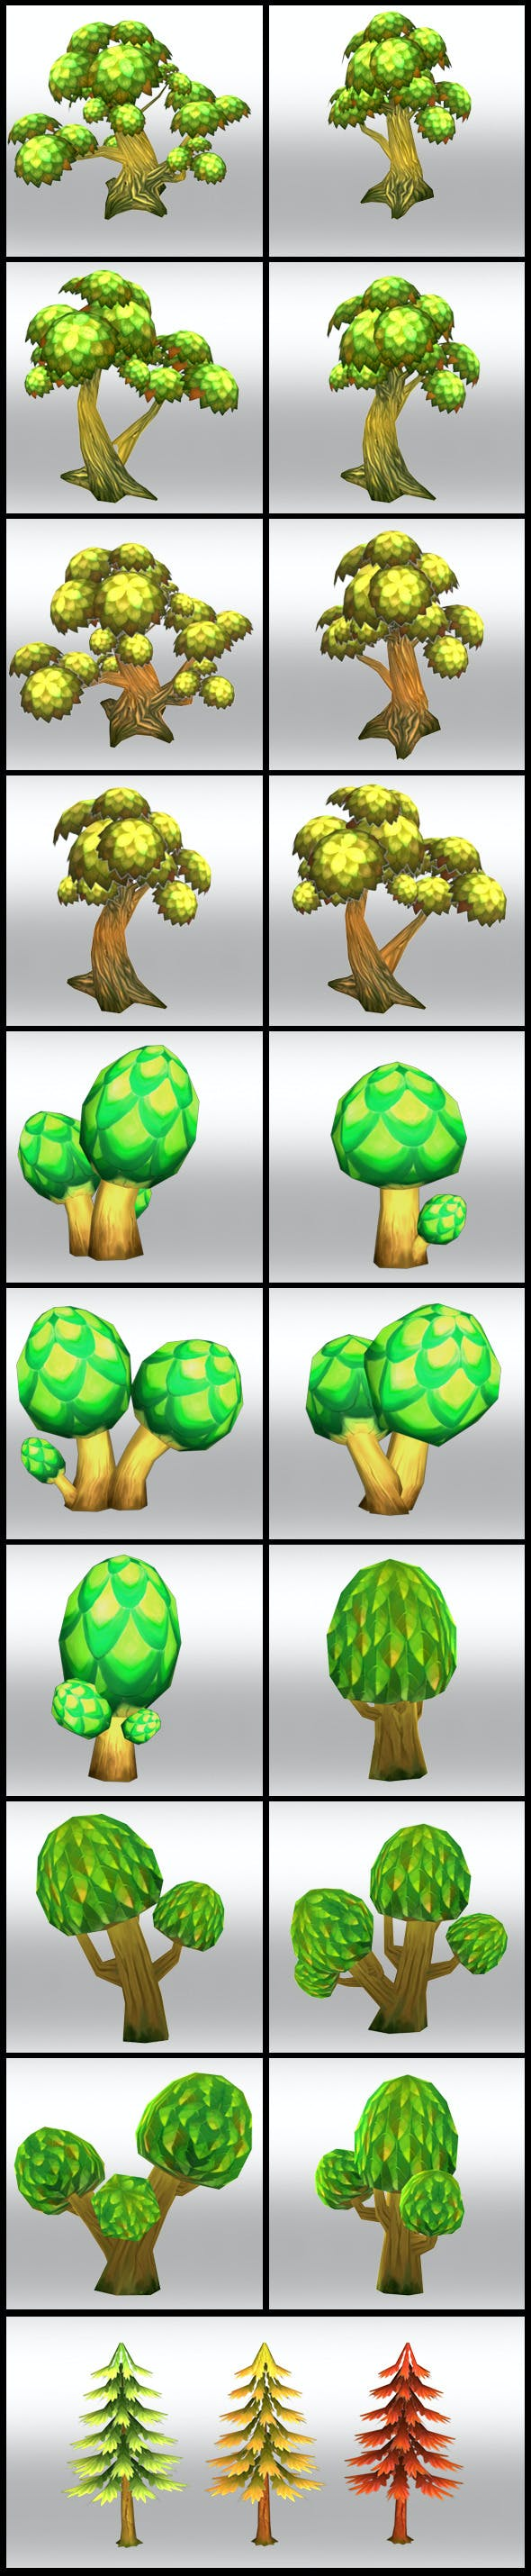 Lowpoly Fantasy Trees pack - 3DOcean Item for Sale